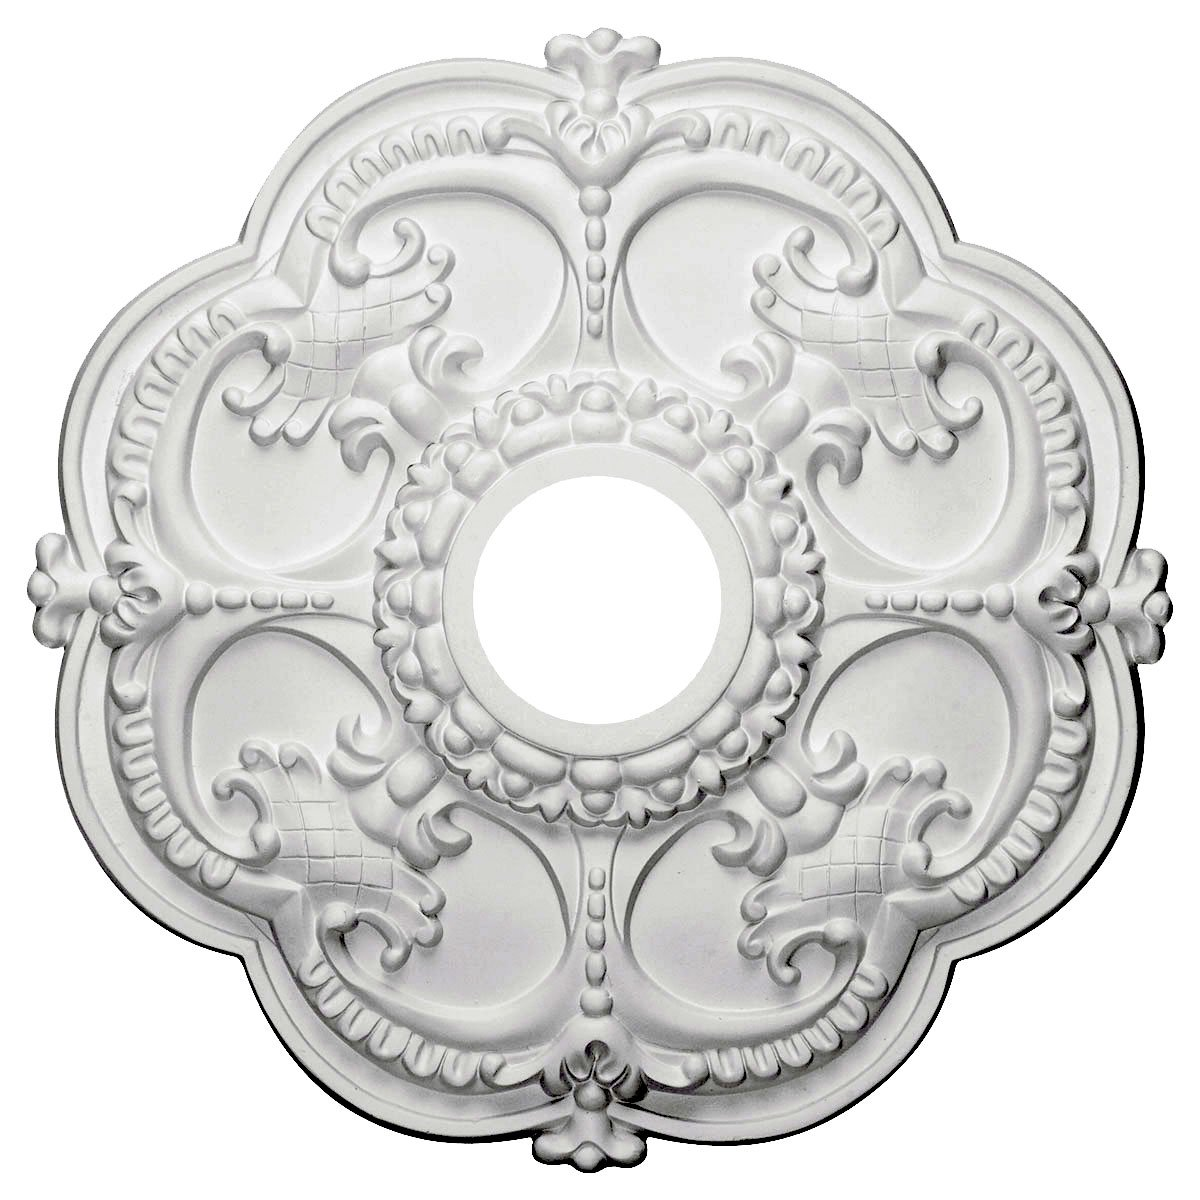 poly ceiling picture using simple killer and white medallions interior accessories of decorative for ceilings neat decoration home